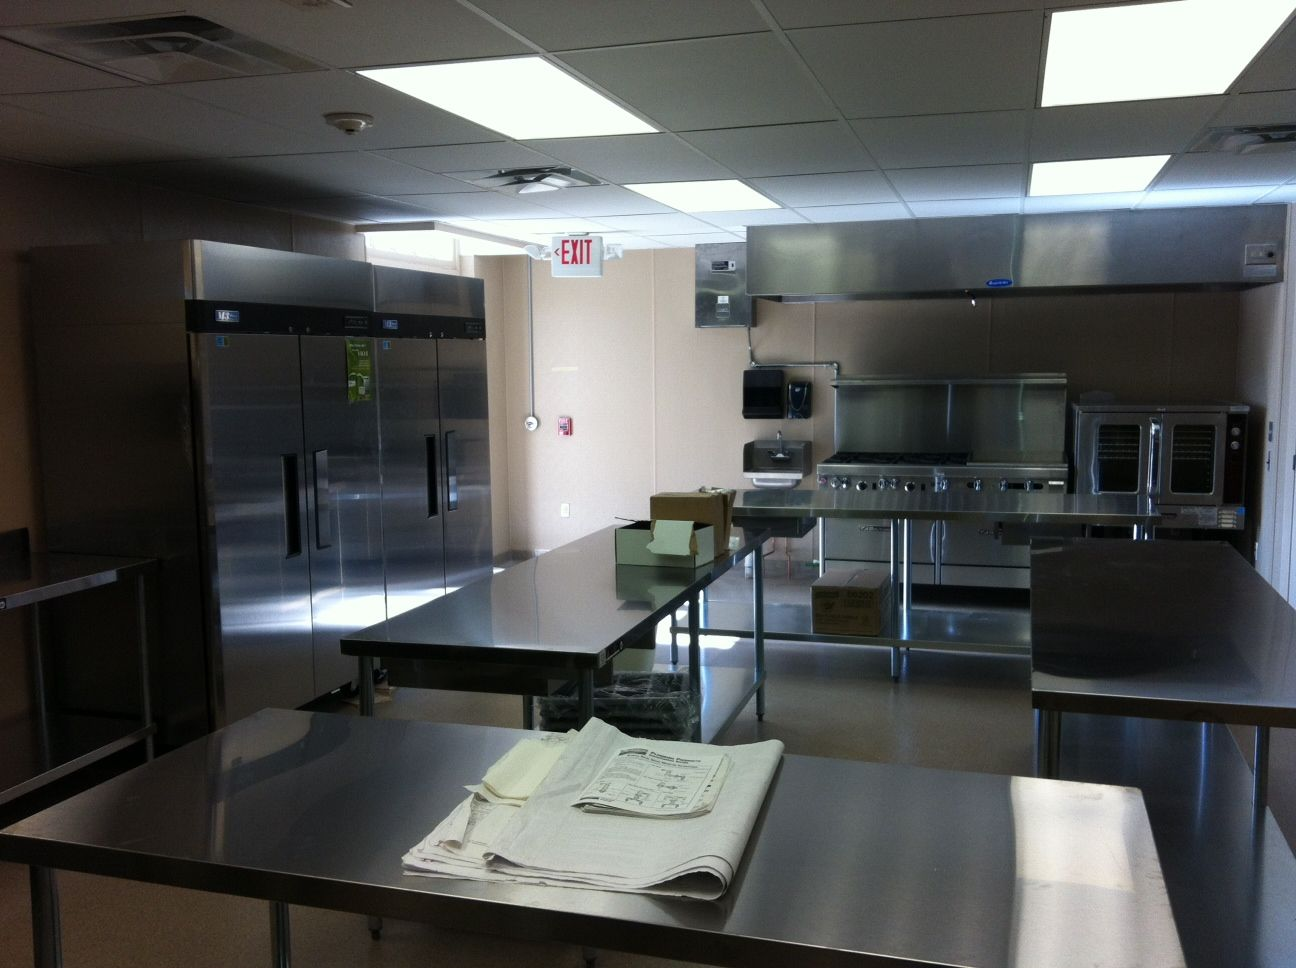 Industrial Church Kitchens  Commercial  Gjw Builder Inc Glamorous Church Kitchen Design Design Ideas